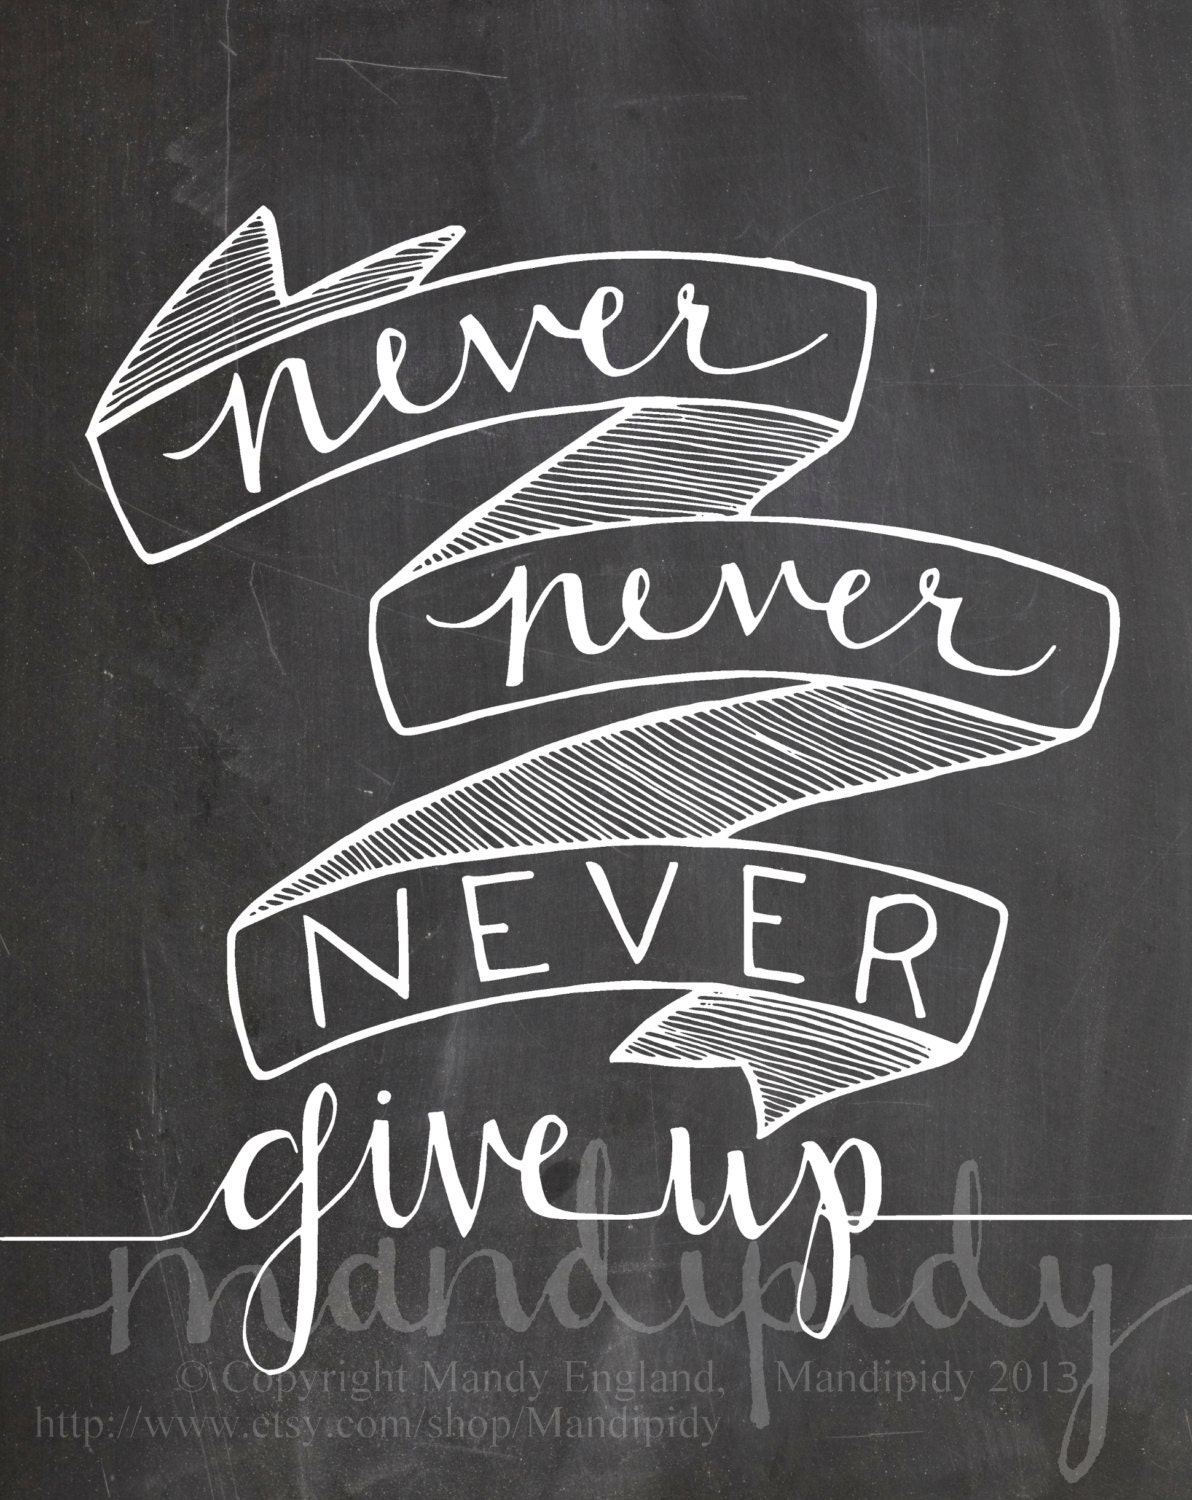 items similar to never give up winston churchill quote vintage chalkboard typography 8x10. Black Bedroom Furniture Sets. Home Design Ideas